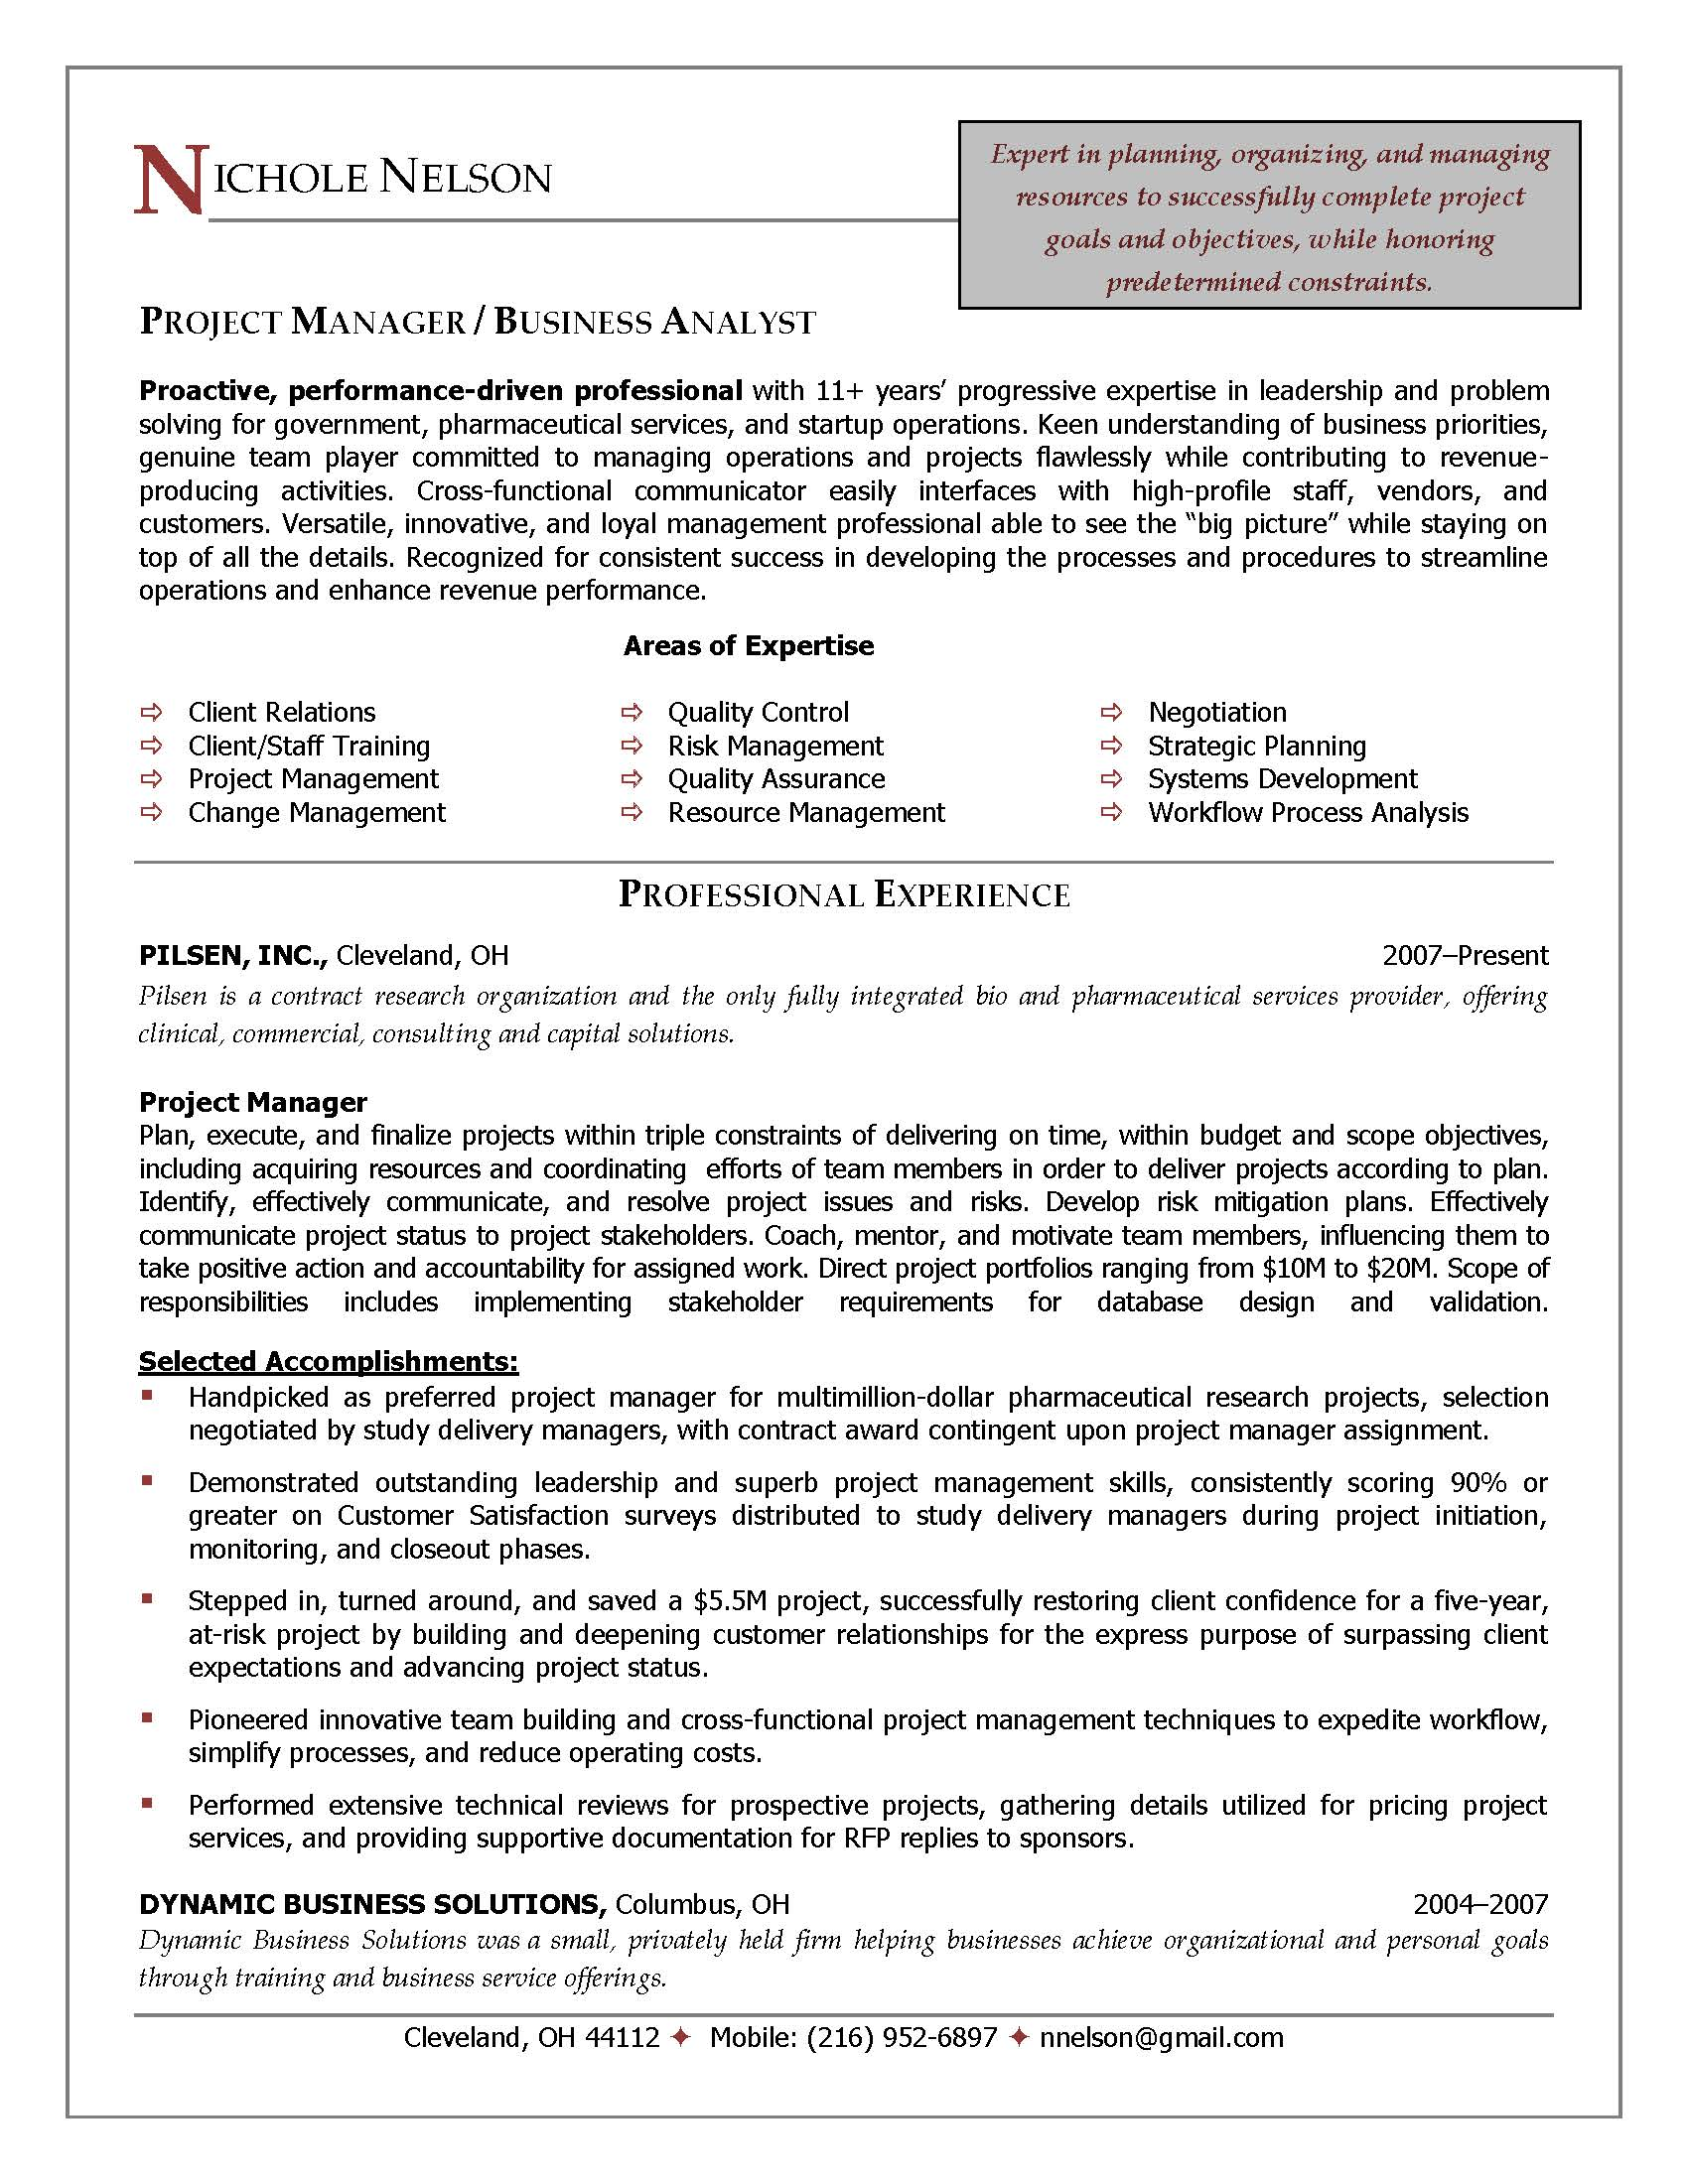 Project Manager Resume Sample, Provided By Elite Resume Writing Services  Program Director Resume